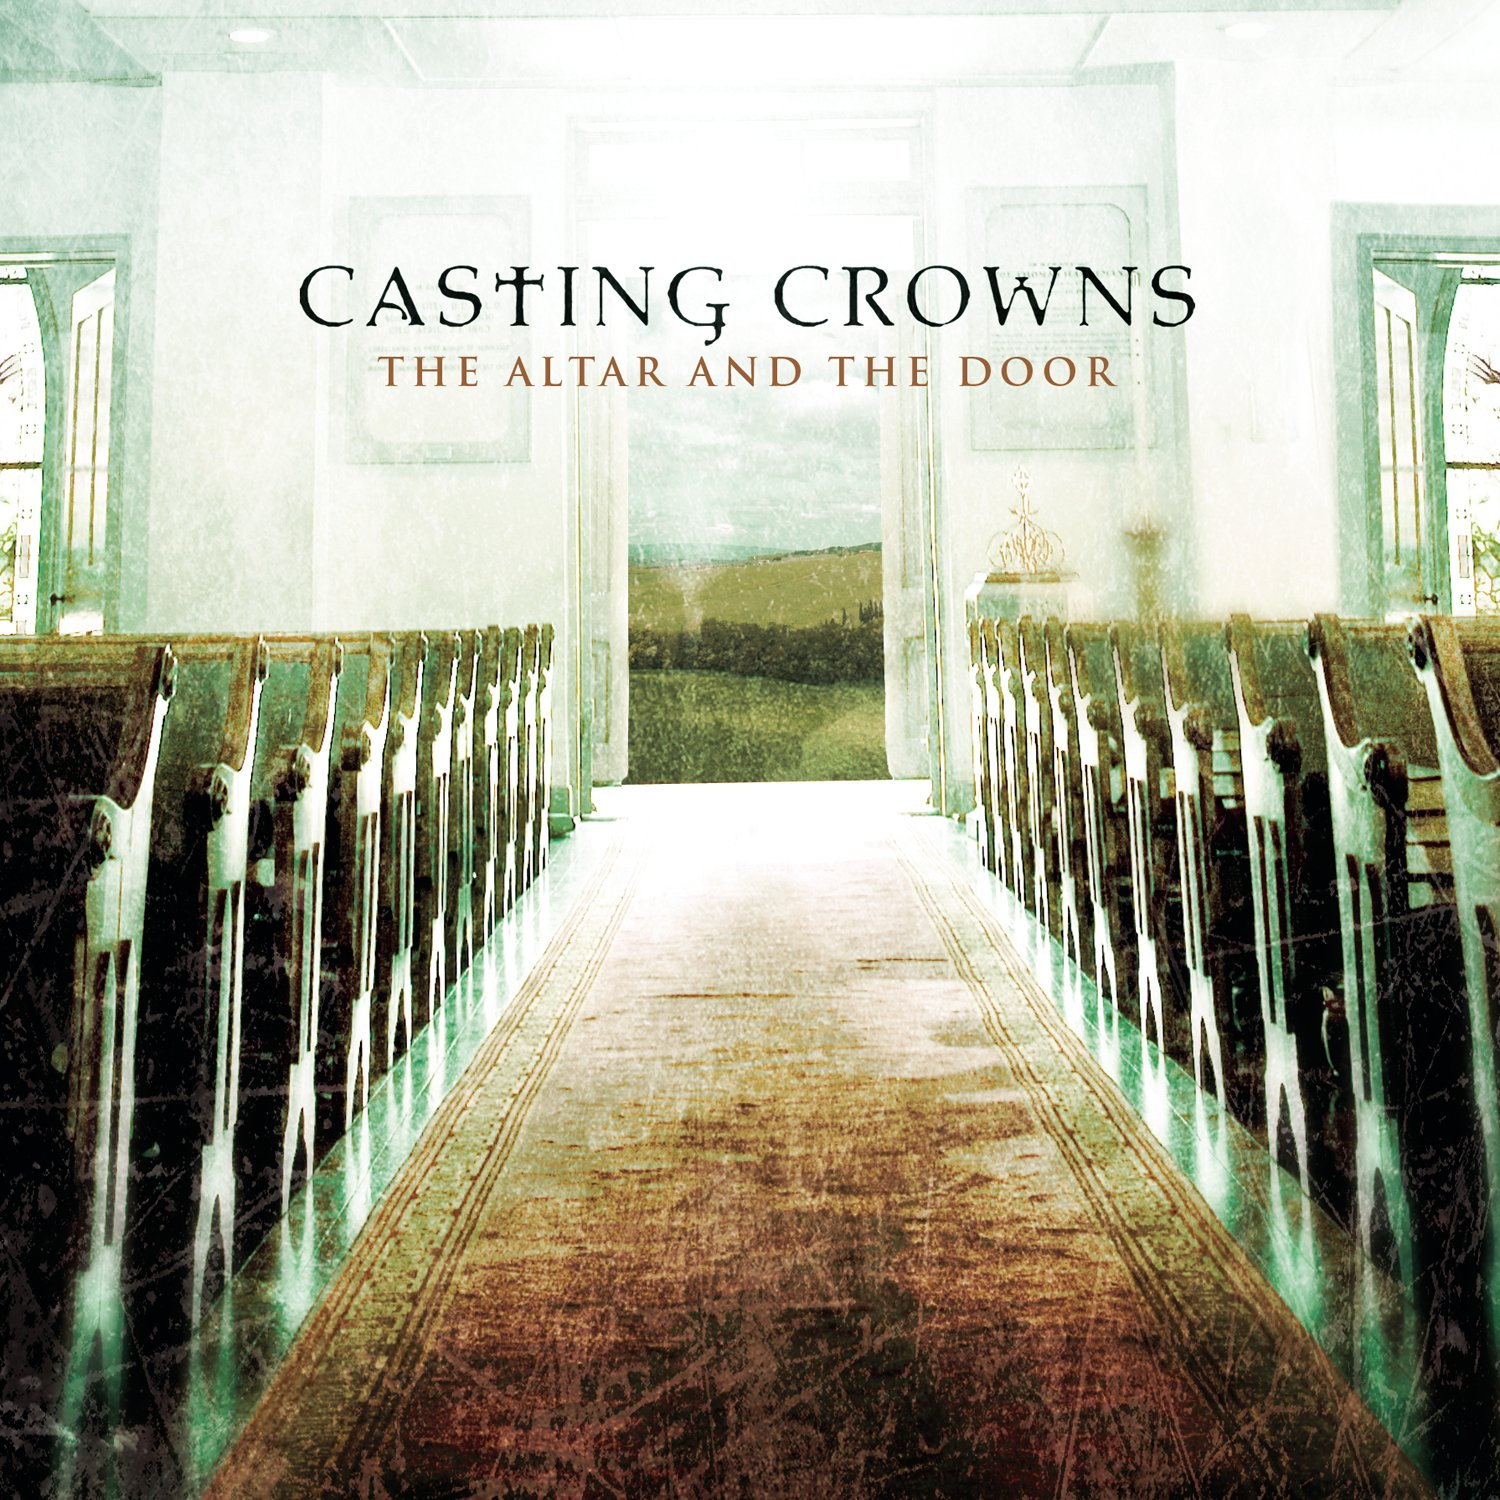 & Casting Crowns - The Altar and the Door - Amazon.com Music